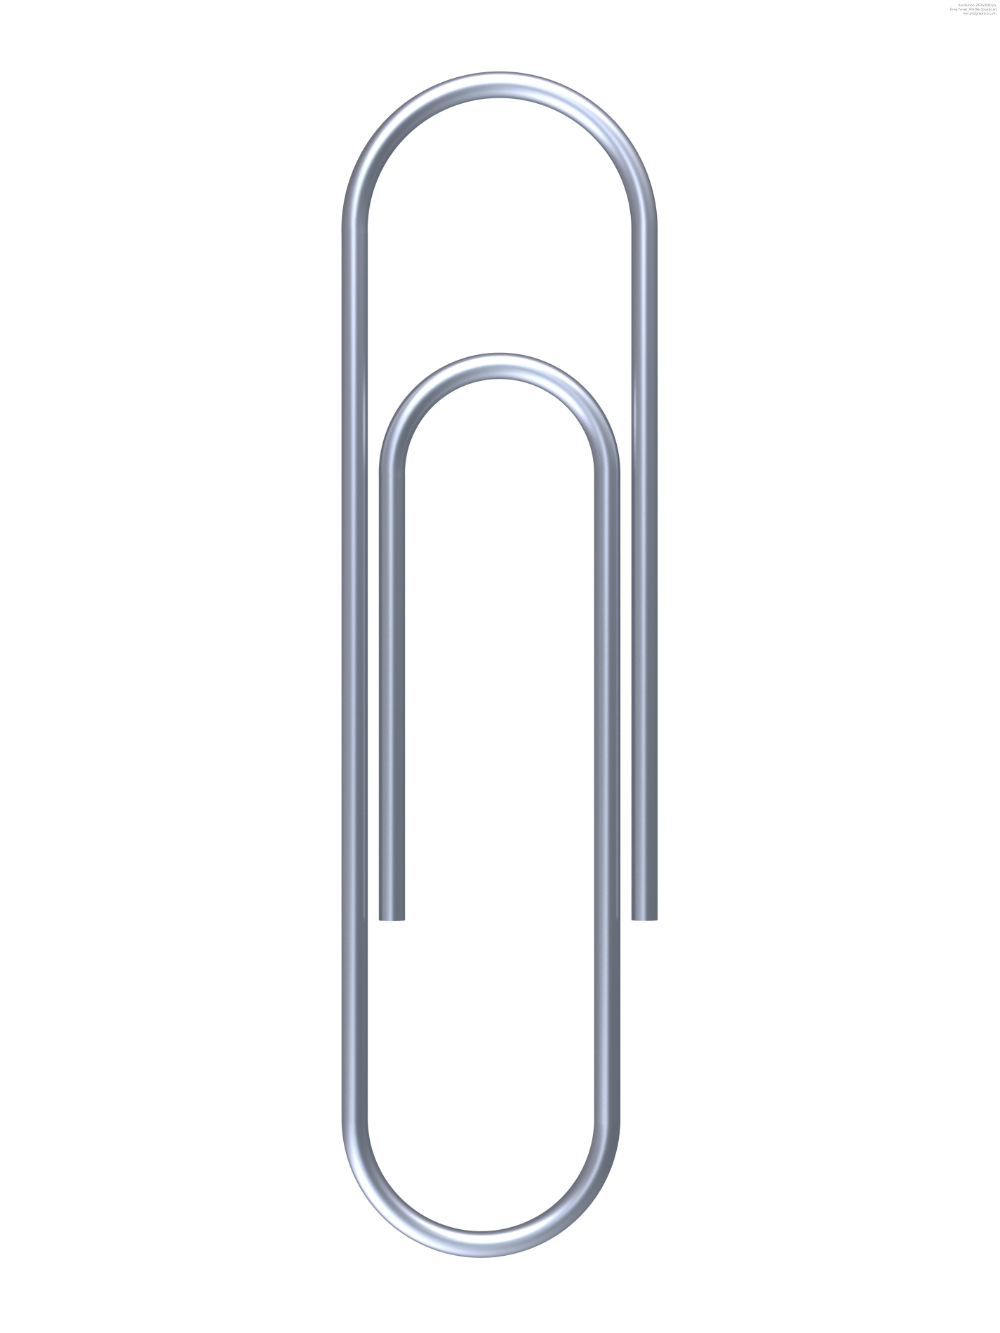 A Shout Out To The Paper Clip Brokaw Clip Art Library Paper Clip Clip Art Library Vintage Labels